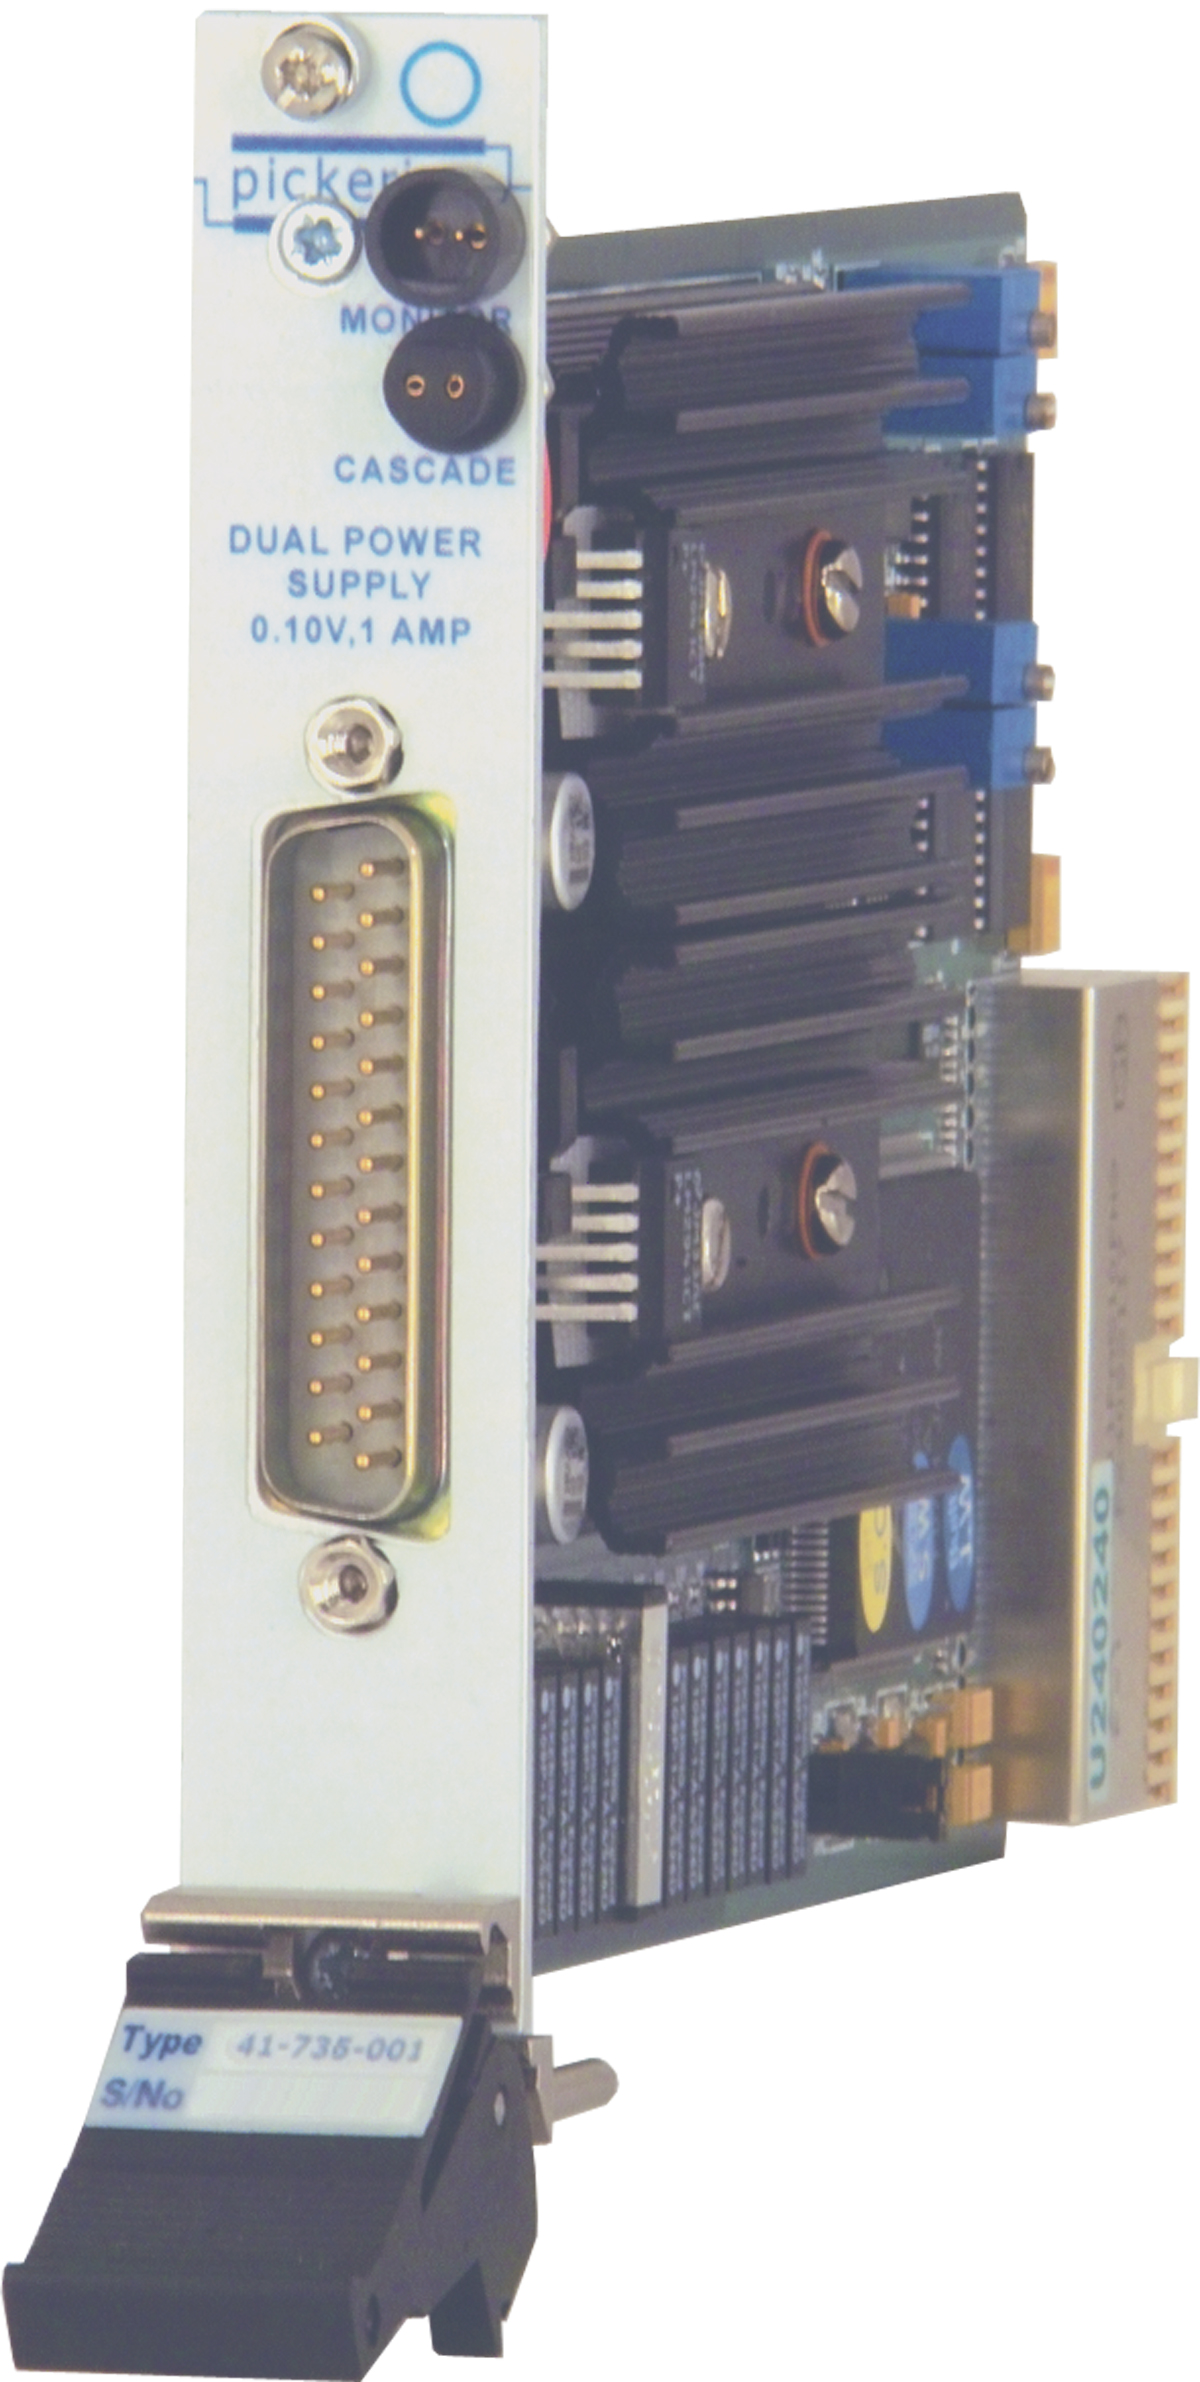 Pxi Dual Programmable 10v Power Supply 41 735 001